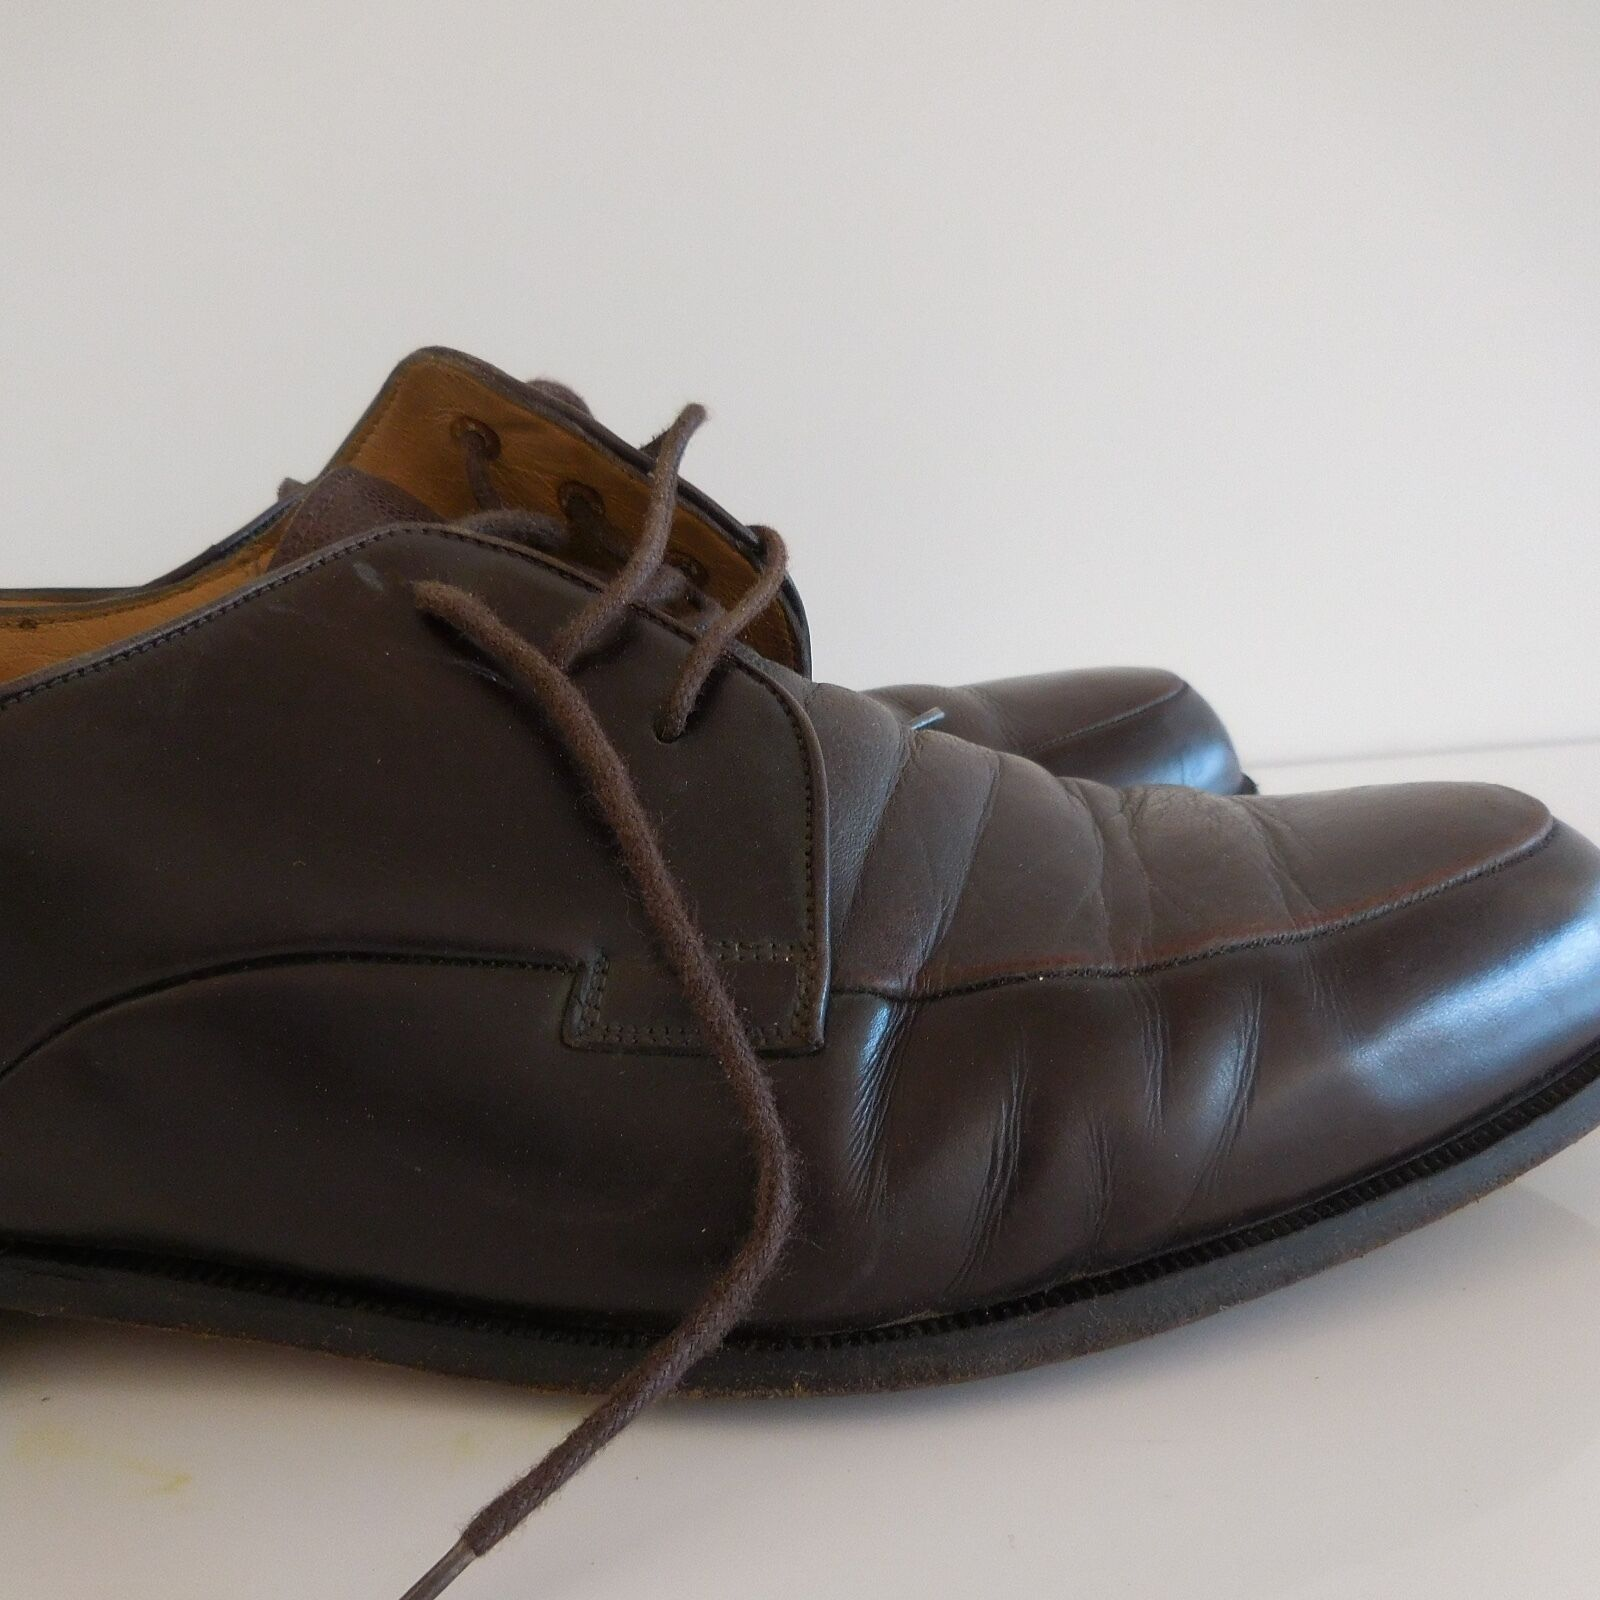 Xxème Cuir Bally Vintage Italy Chaussures In Martore Made kuPZOXi